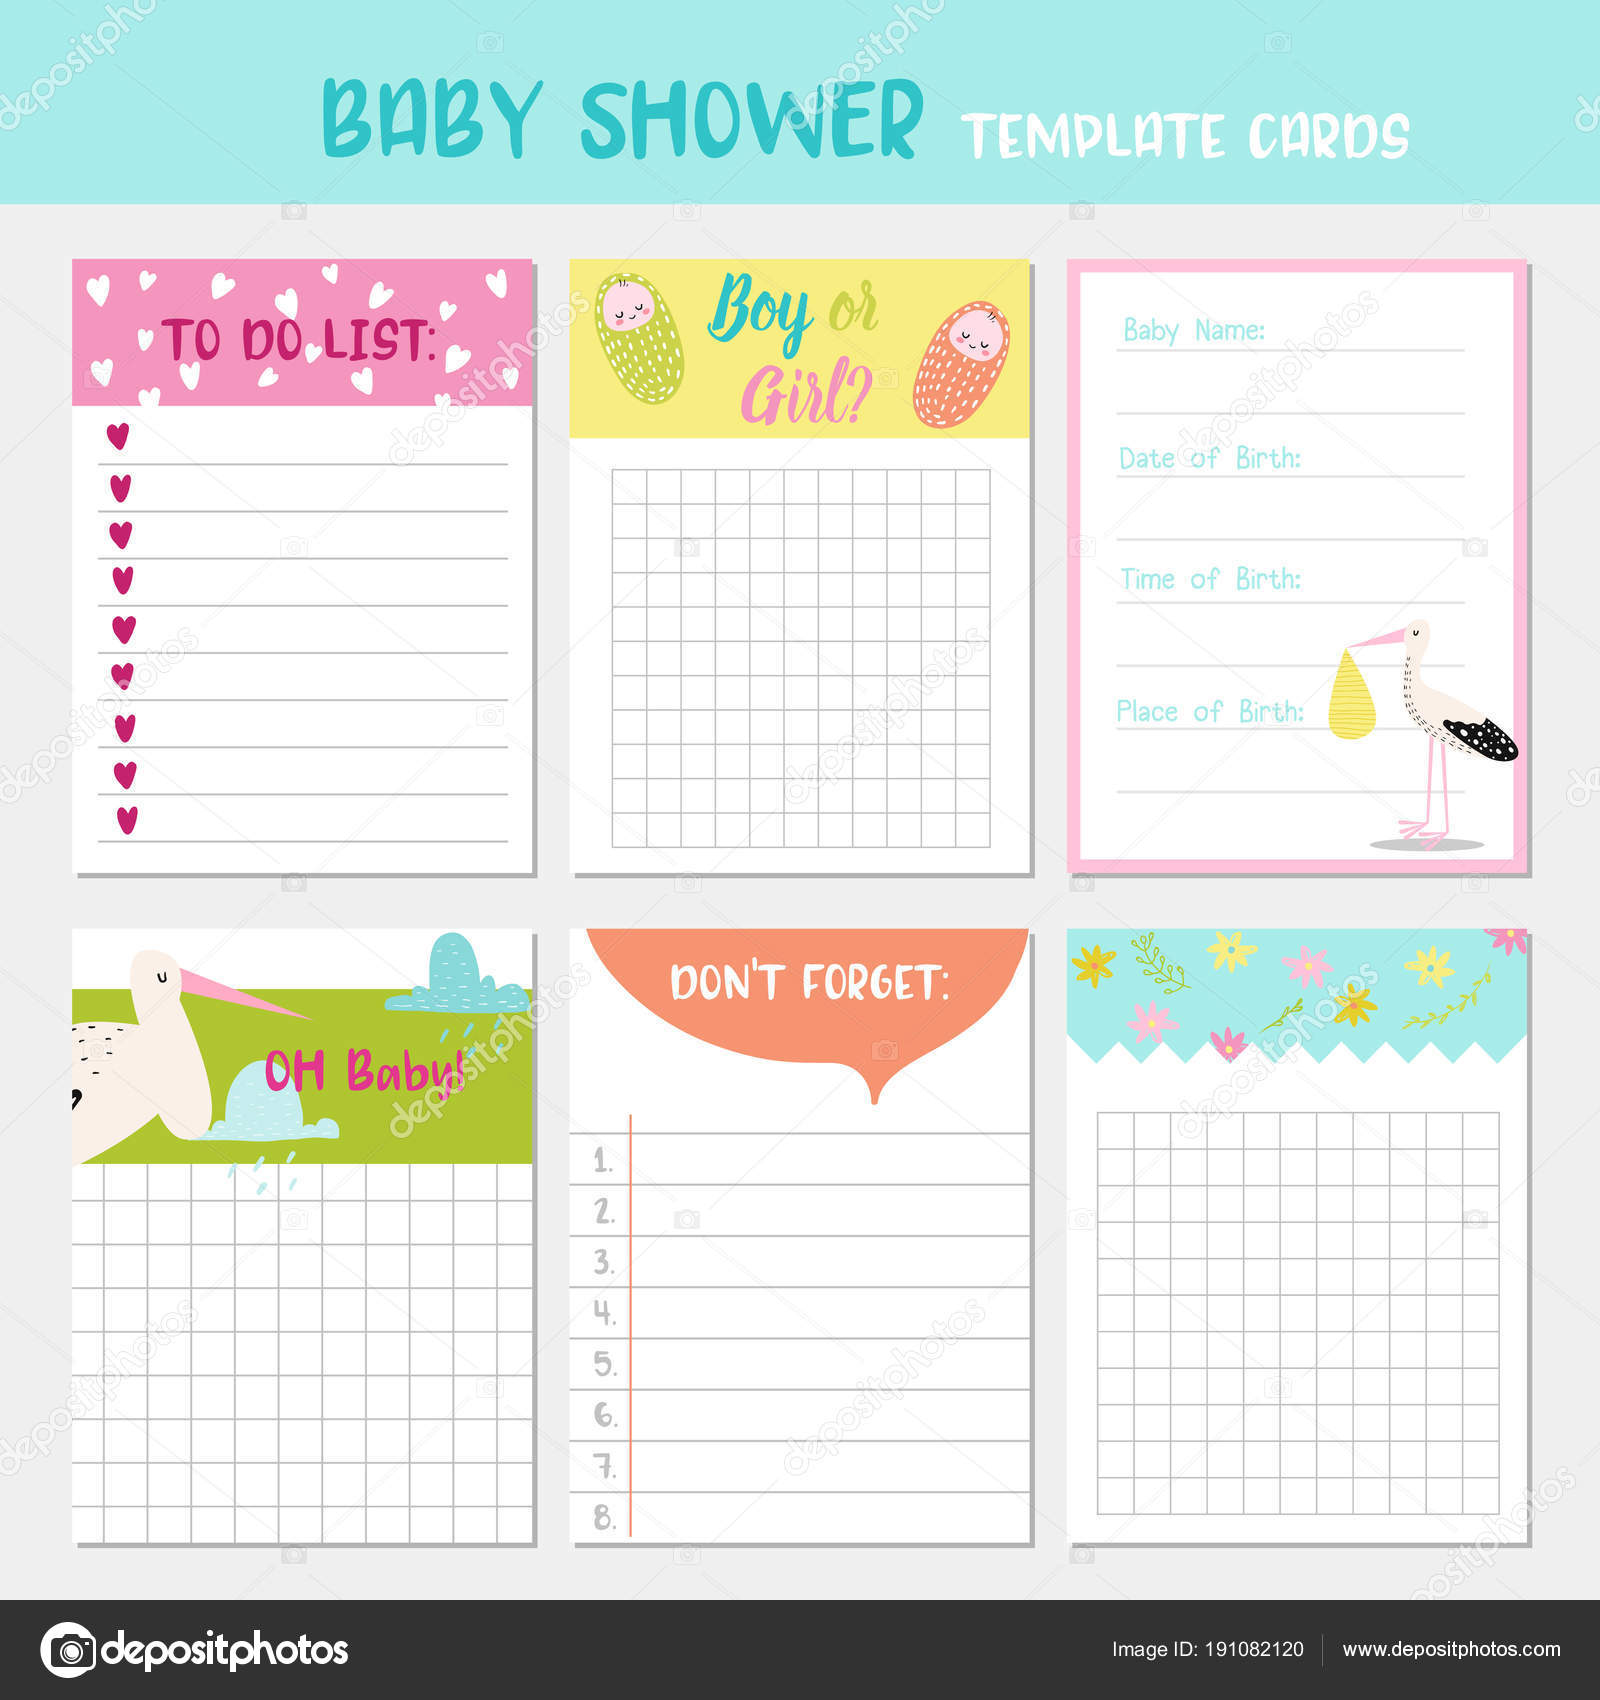 baby shower party templates to do list newborn child card childish backgrounds with